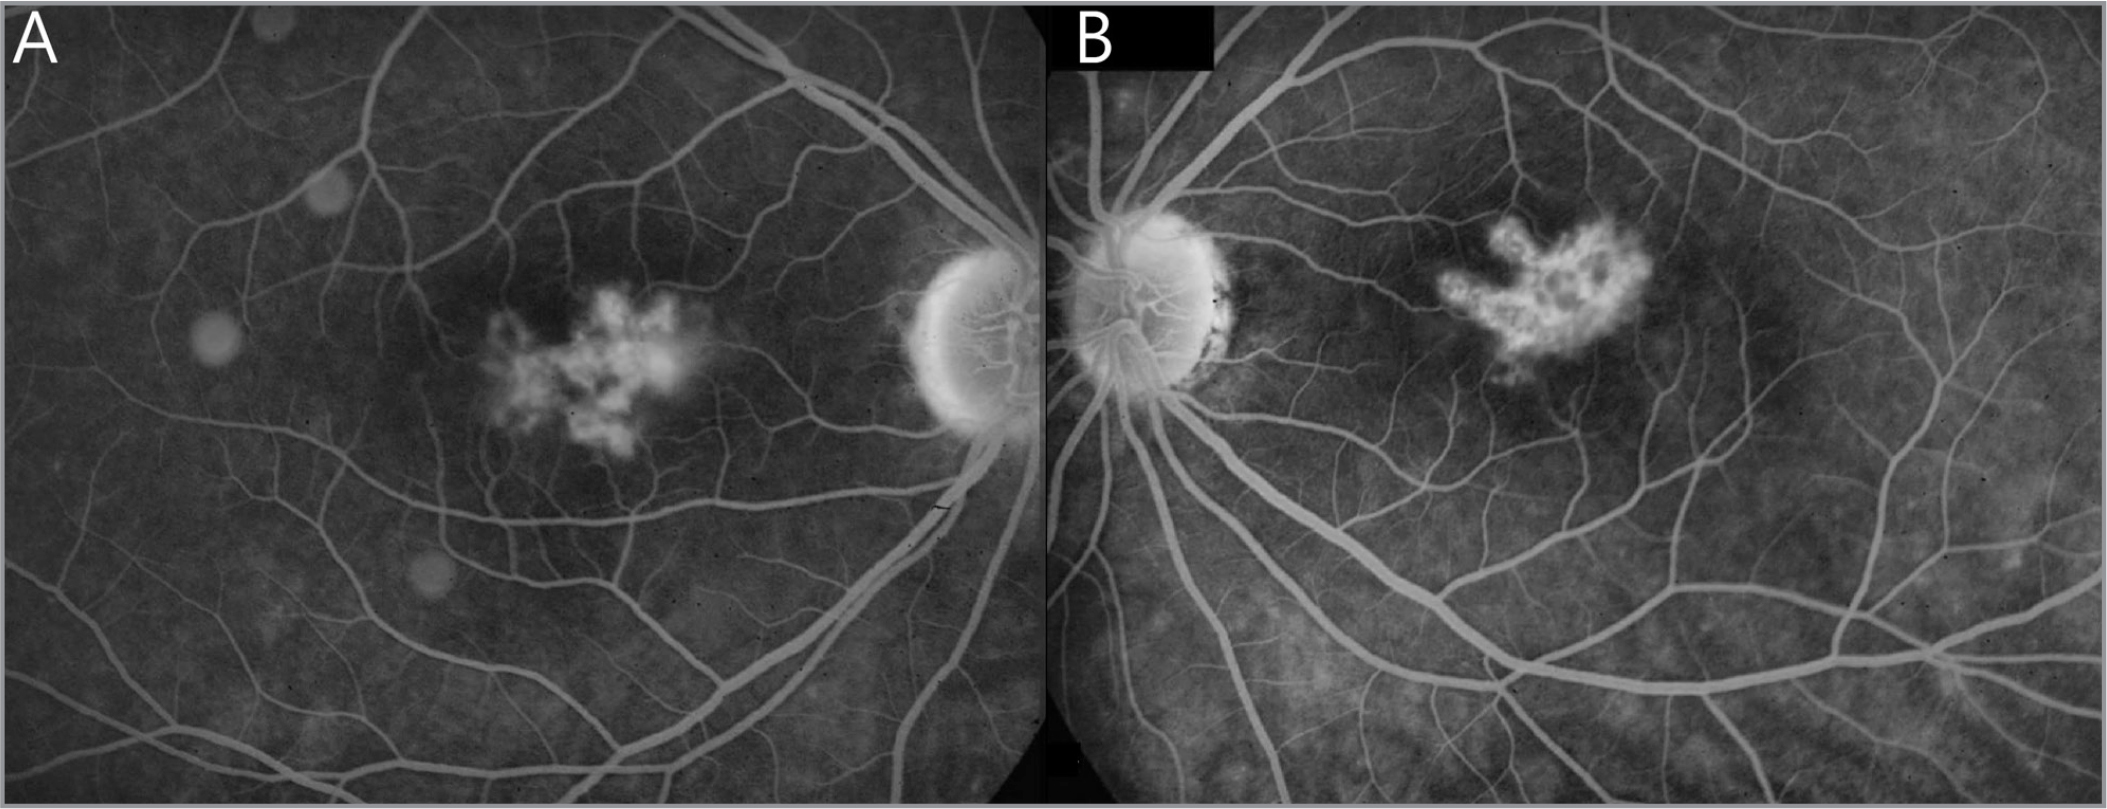 The initial fluorescein angiography of the right (A) and left (B) eye in Patient B shows hyperfluorescent flecks bilaterally in the macula with leakage in the right eye in August 2002.